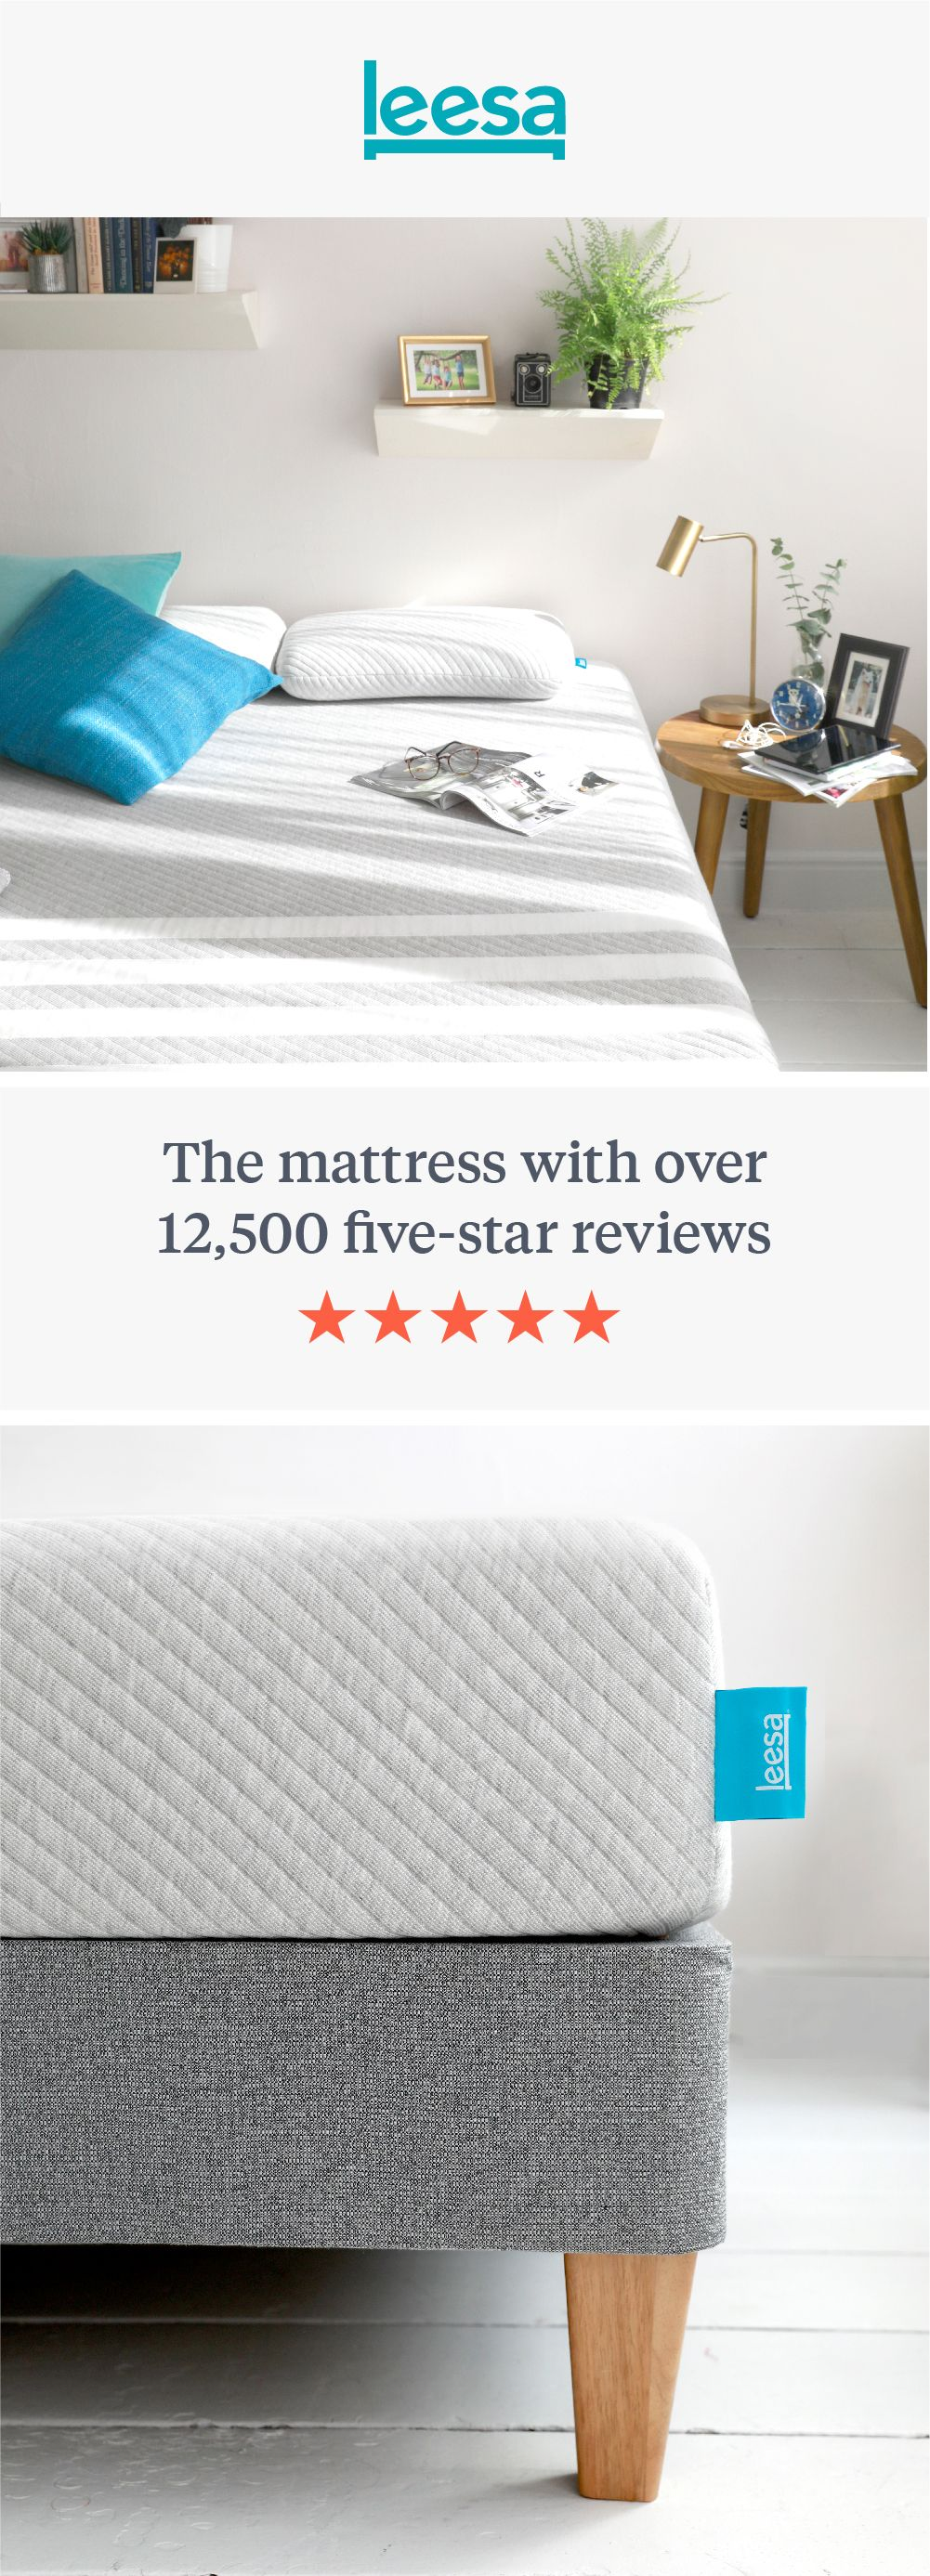 Leesa Mattress With 12 500 Five Star Reviews Living Room Decor Rustic Home Decor Bedroom Leesa Mattress